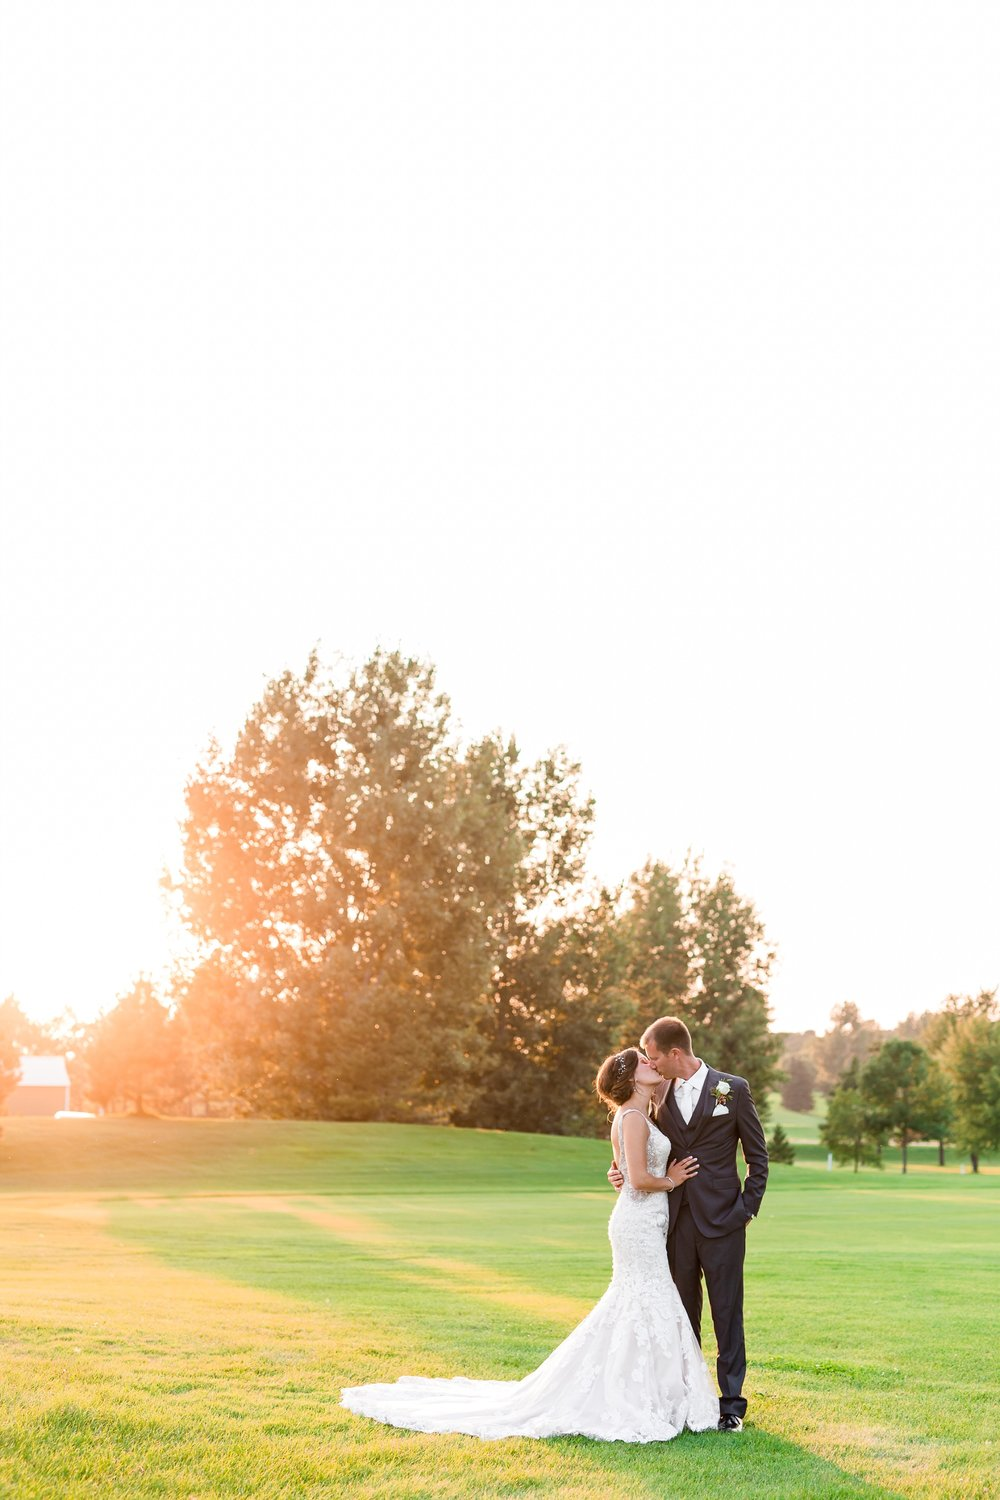 AmberLangerudPhotography_Perham Lakeside Golf Course Wedding_2888.jpg